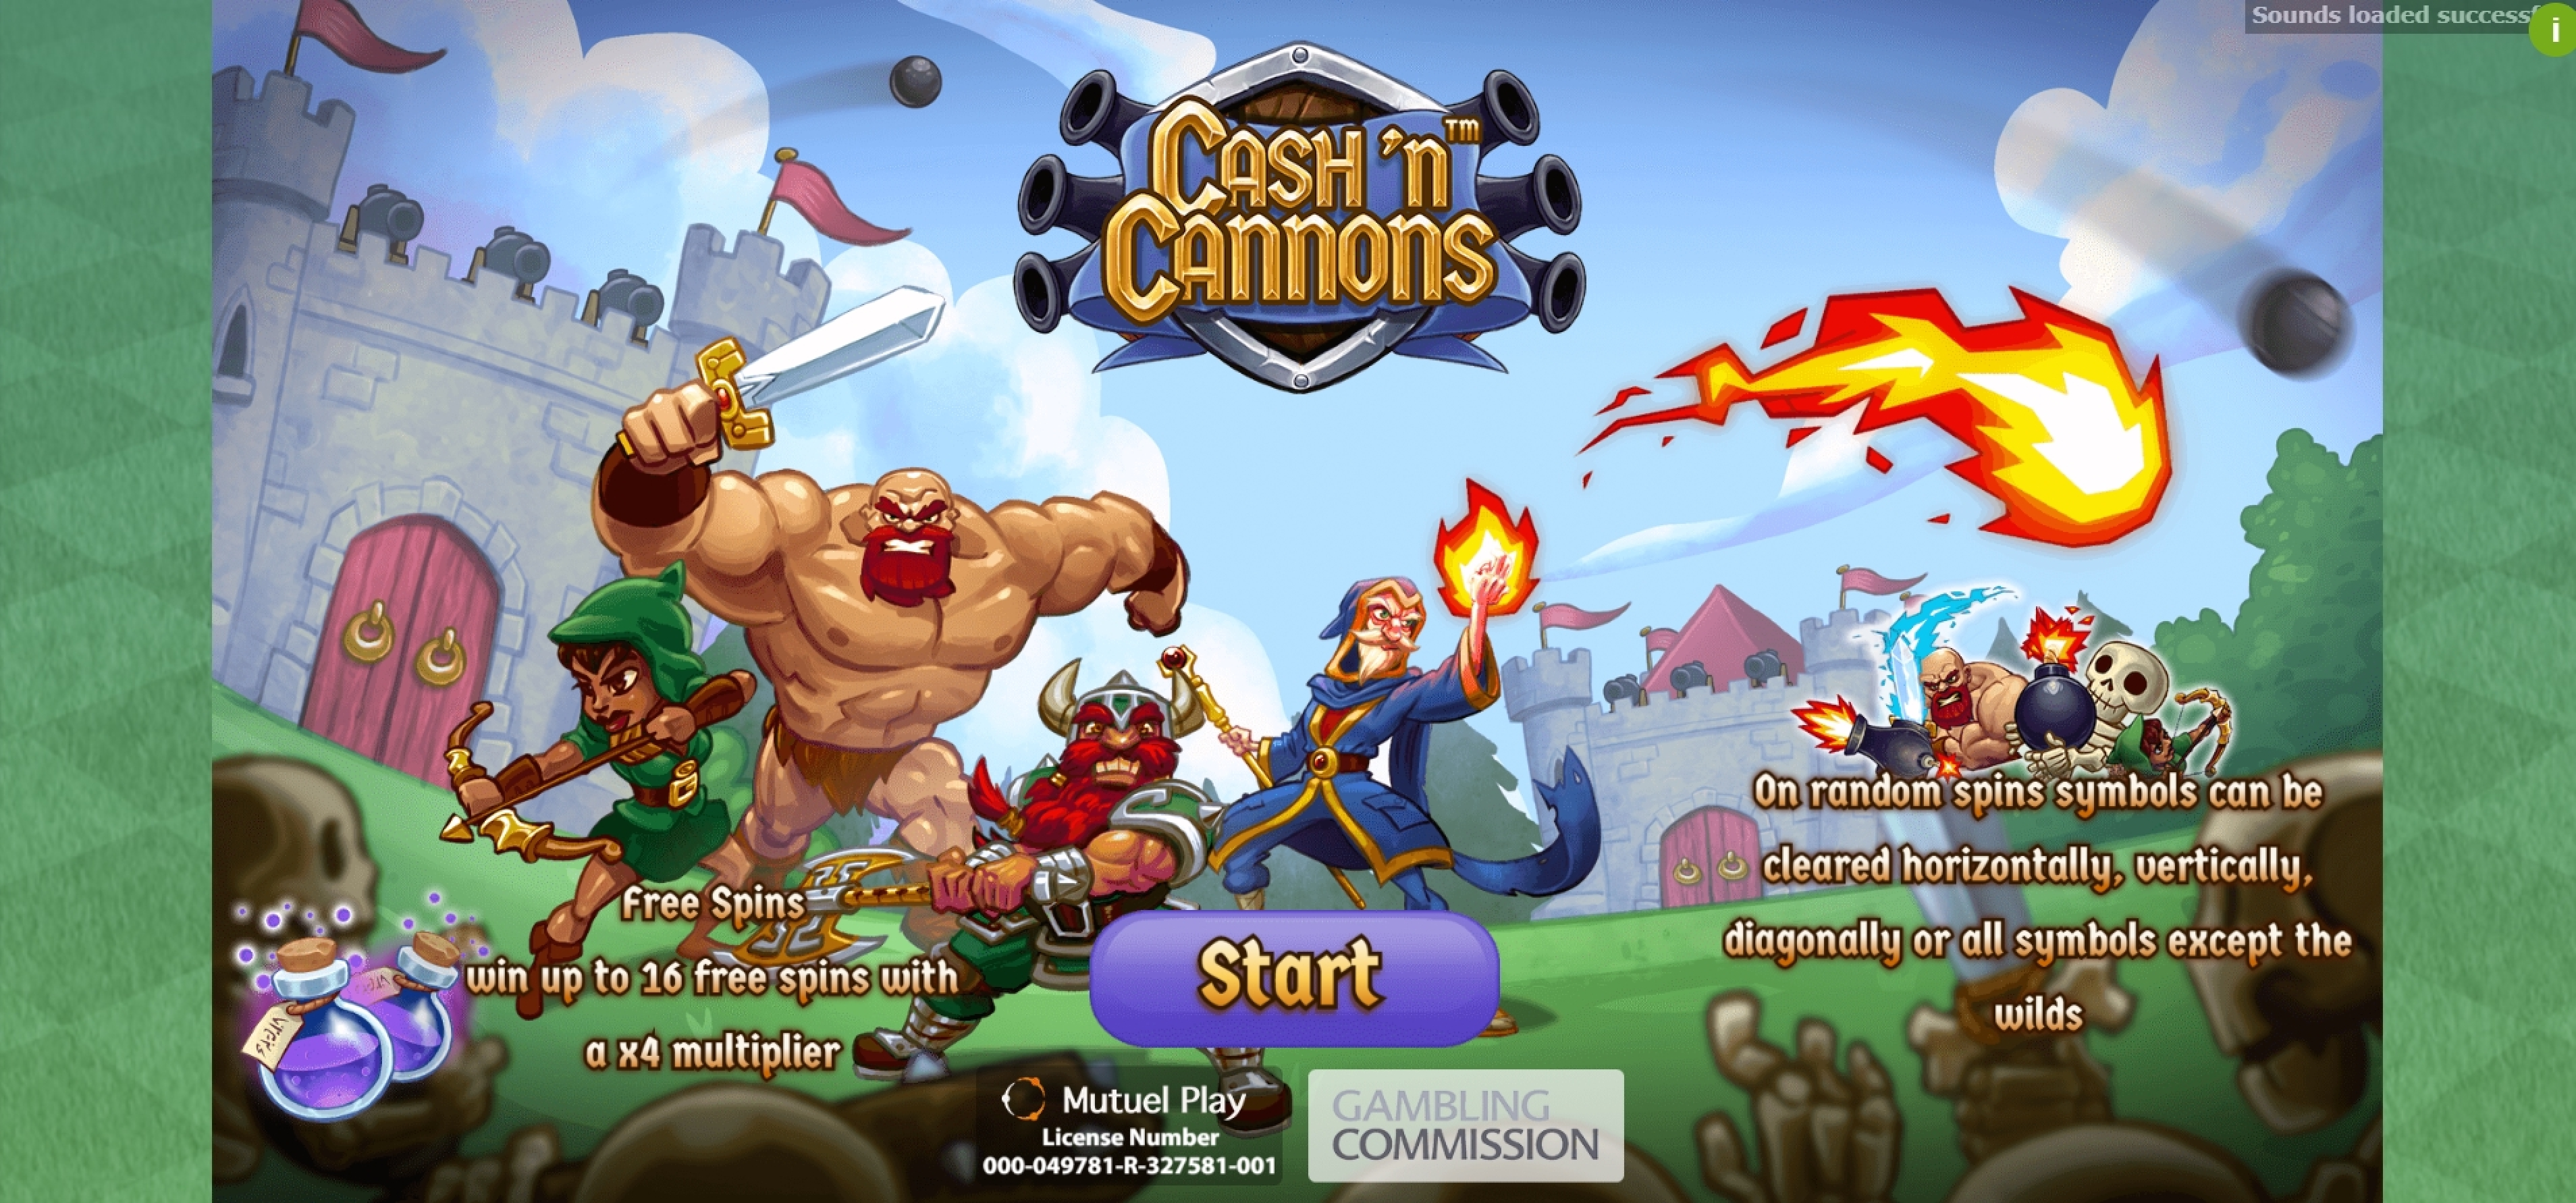 Play Cash 'n Cannons Free Casino Slot Game by Mutuel Play